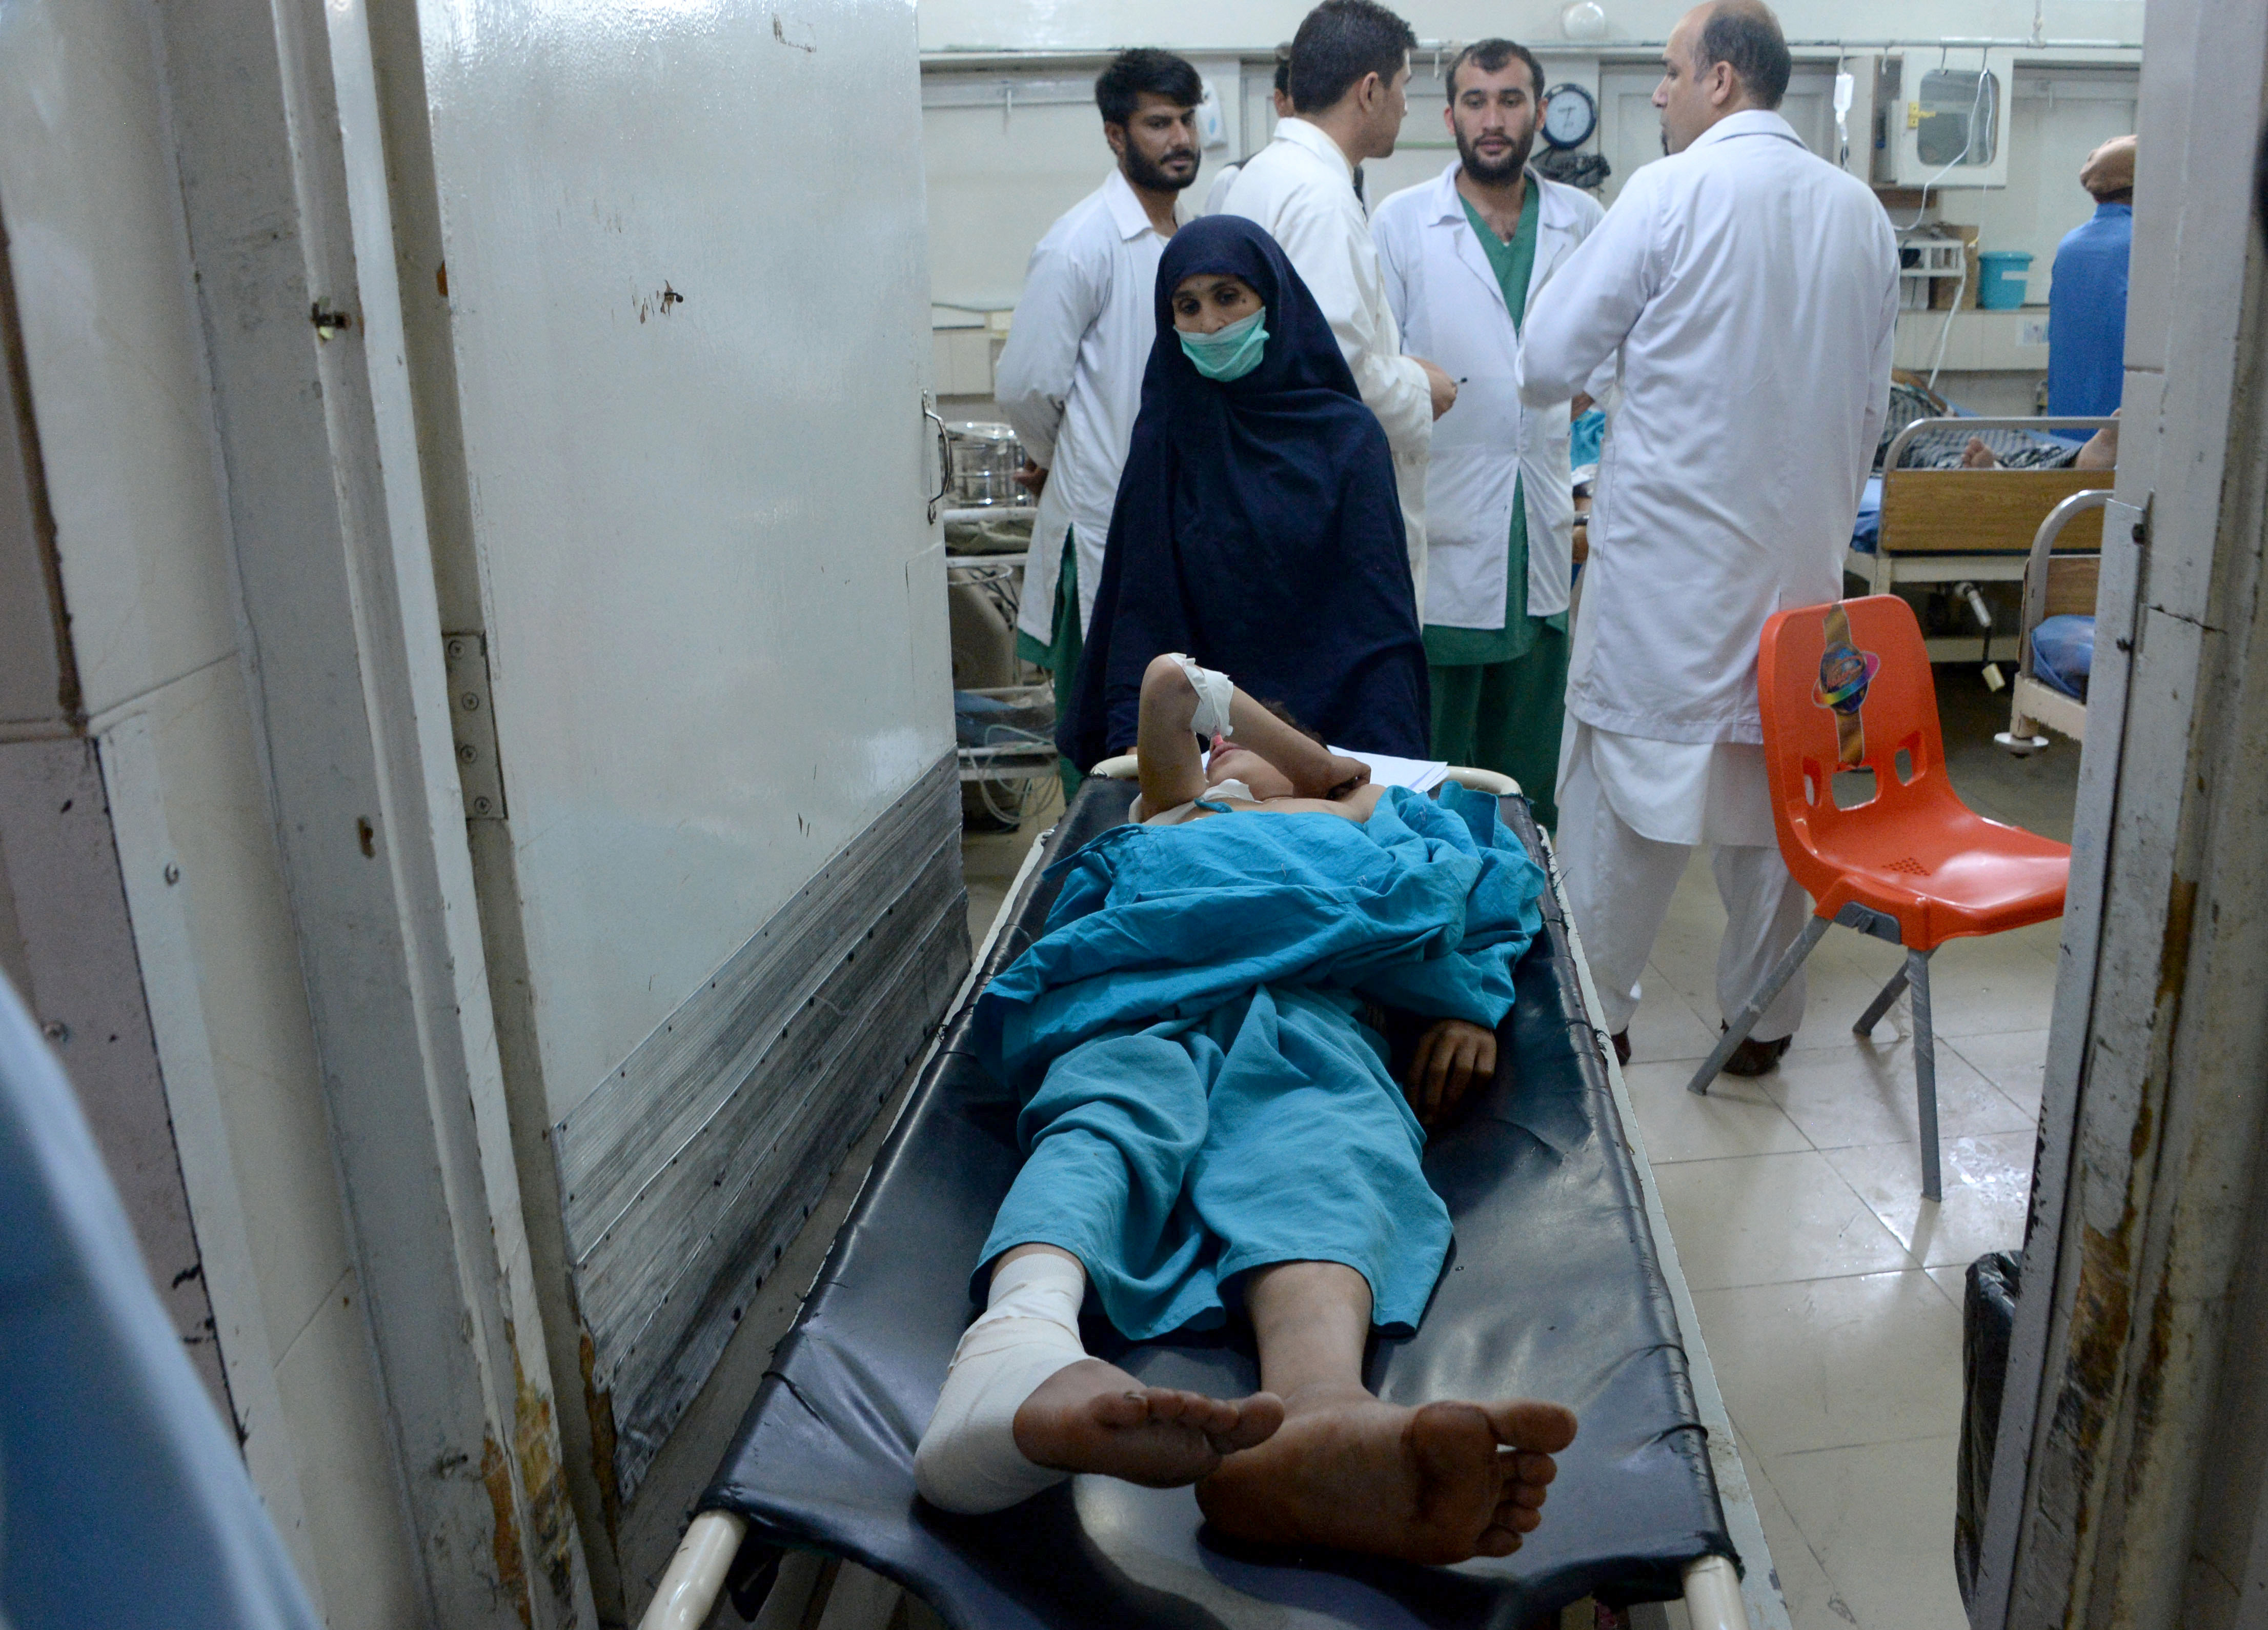 An injured Afghan youth receives treatment at a hospital following a suspected US drone airstrike in the Achin district of Nangarhar province. (File)